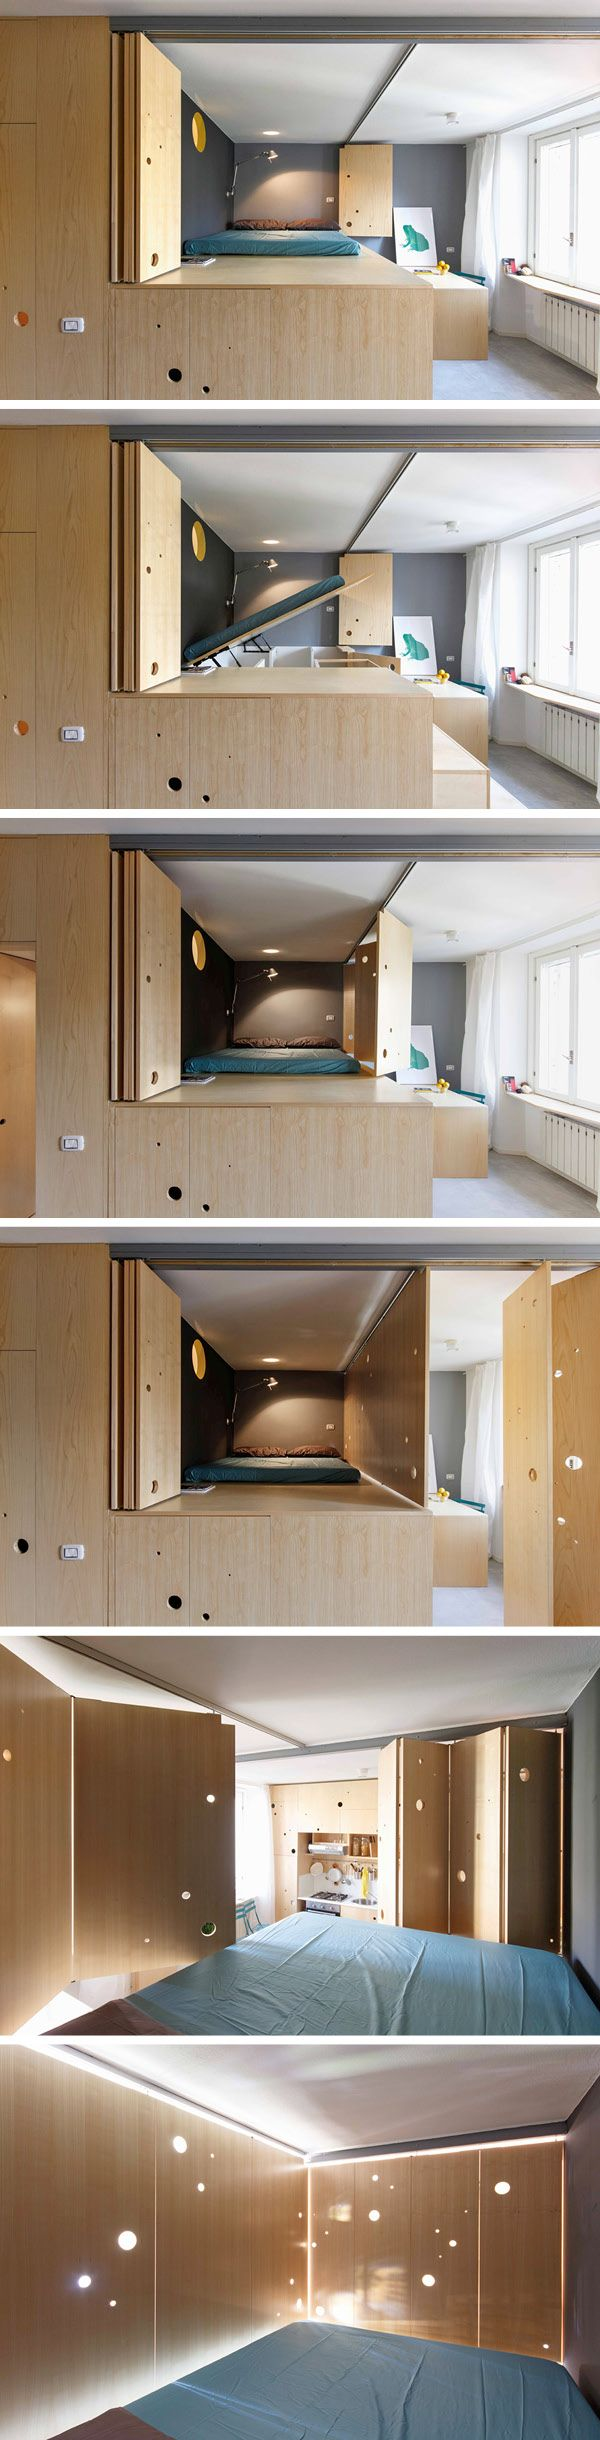 28 best SMALL HOMES images on Pinterest | Tiny spaces, Small ...